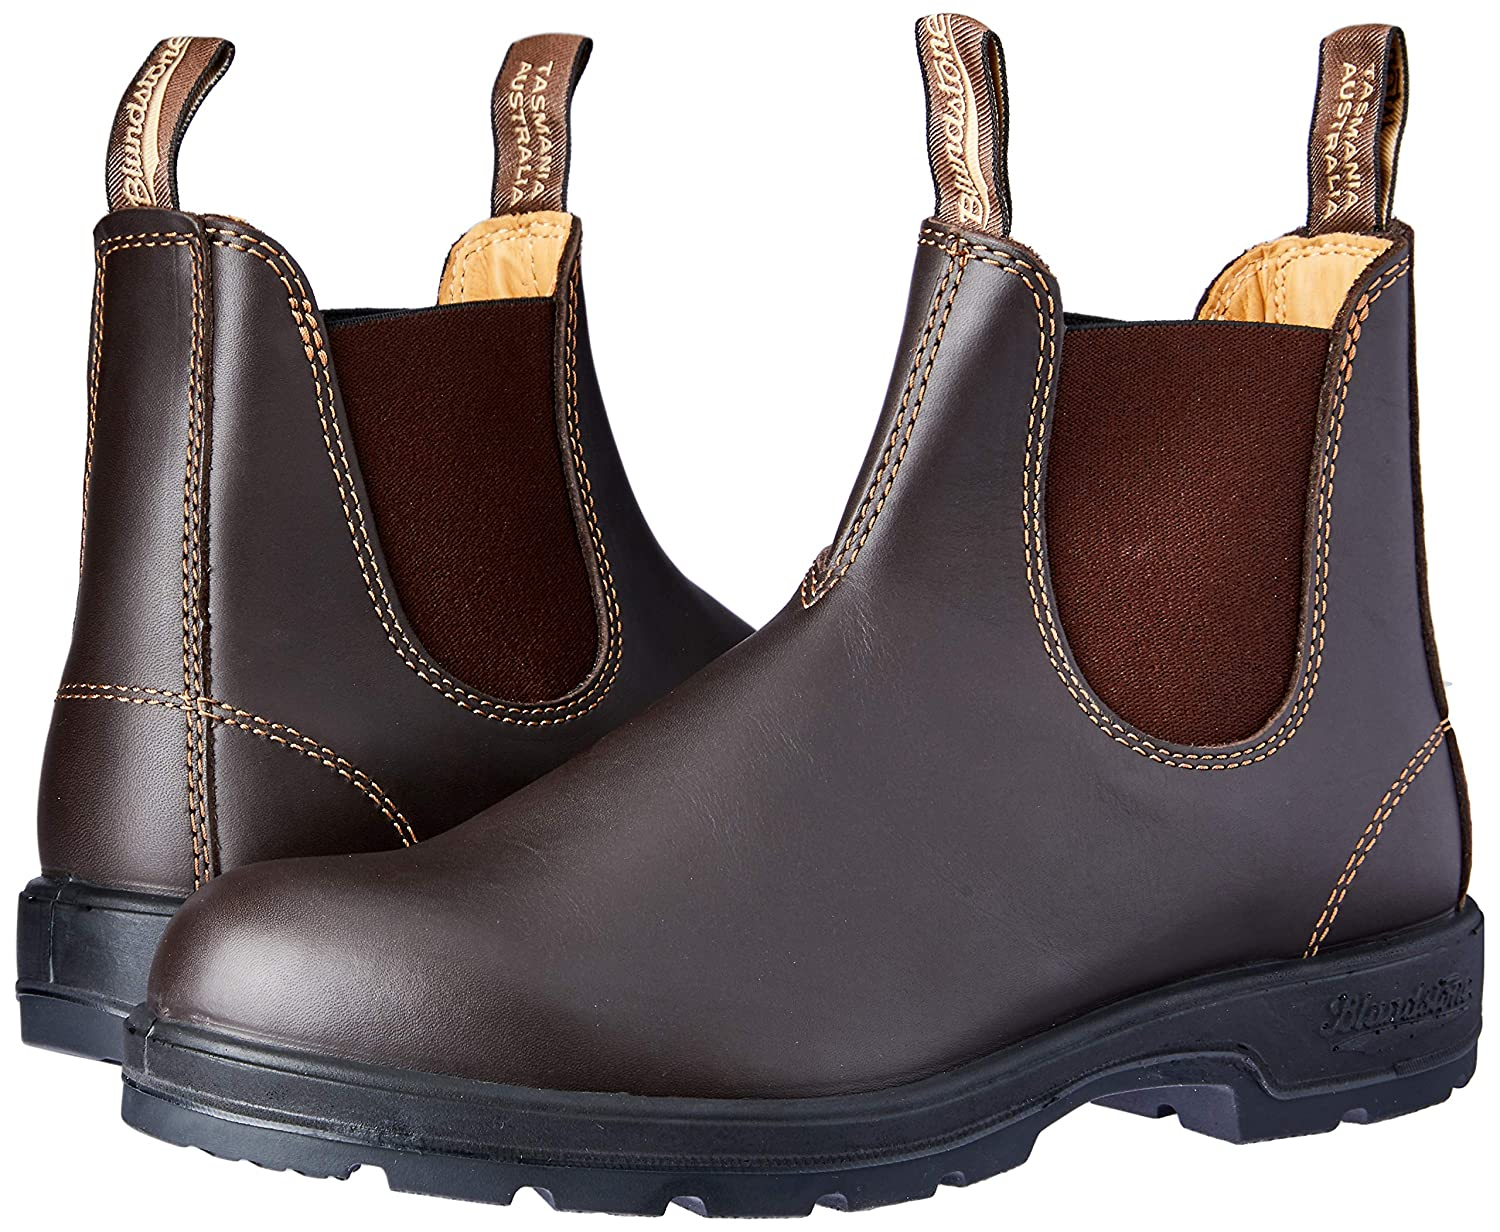 New Blaundstone Leather Leather Leather Ankle Stiefel 561 Crazy Horse EU 46 US 12 UK 11 Men damen 413891